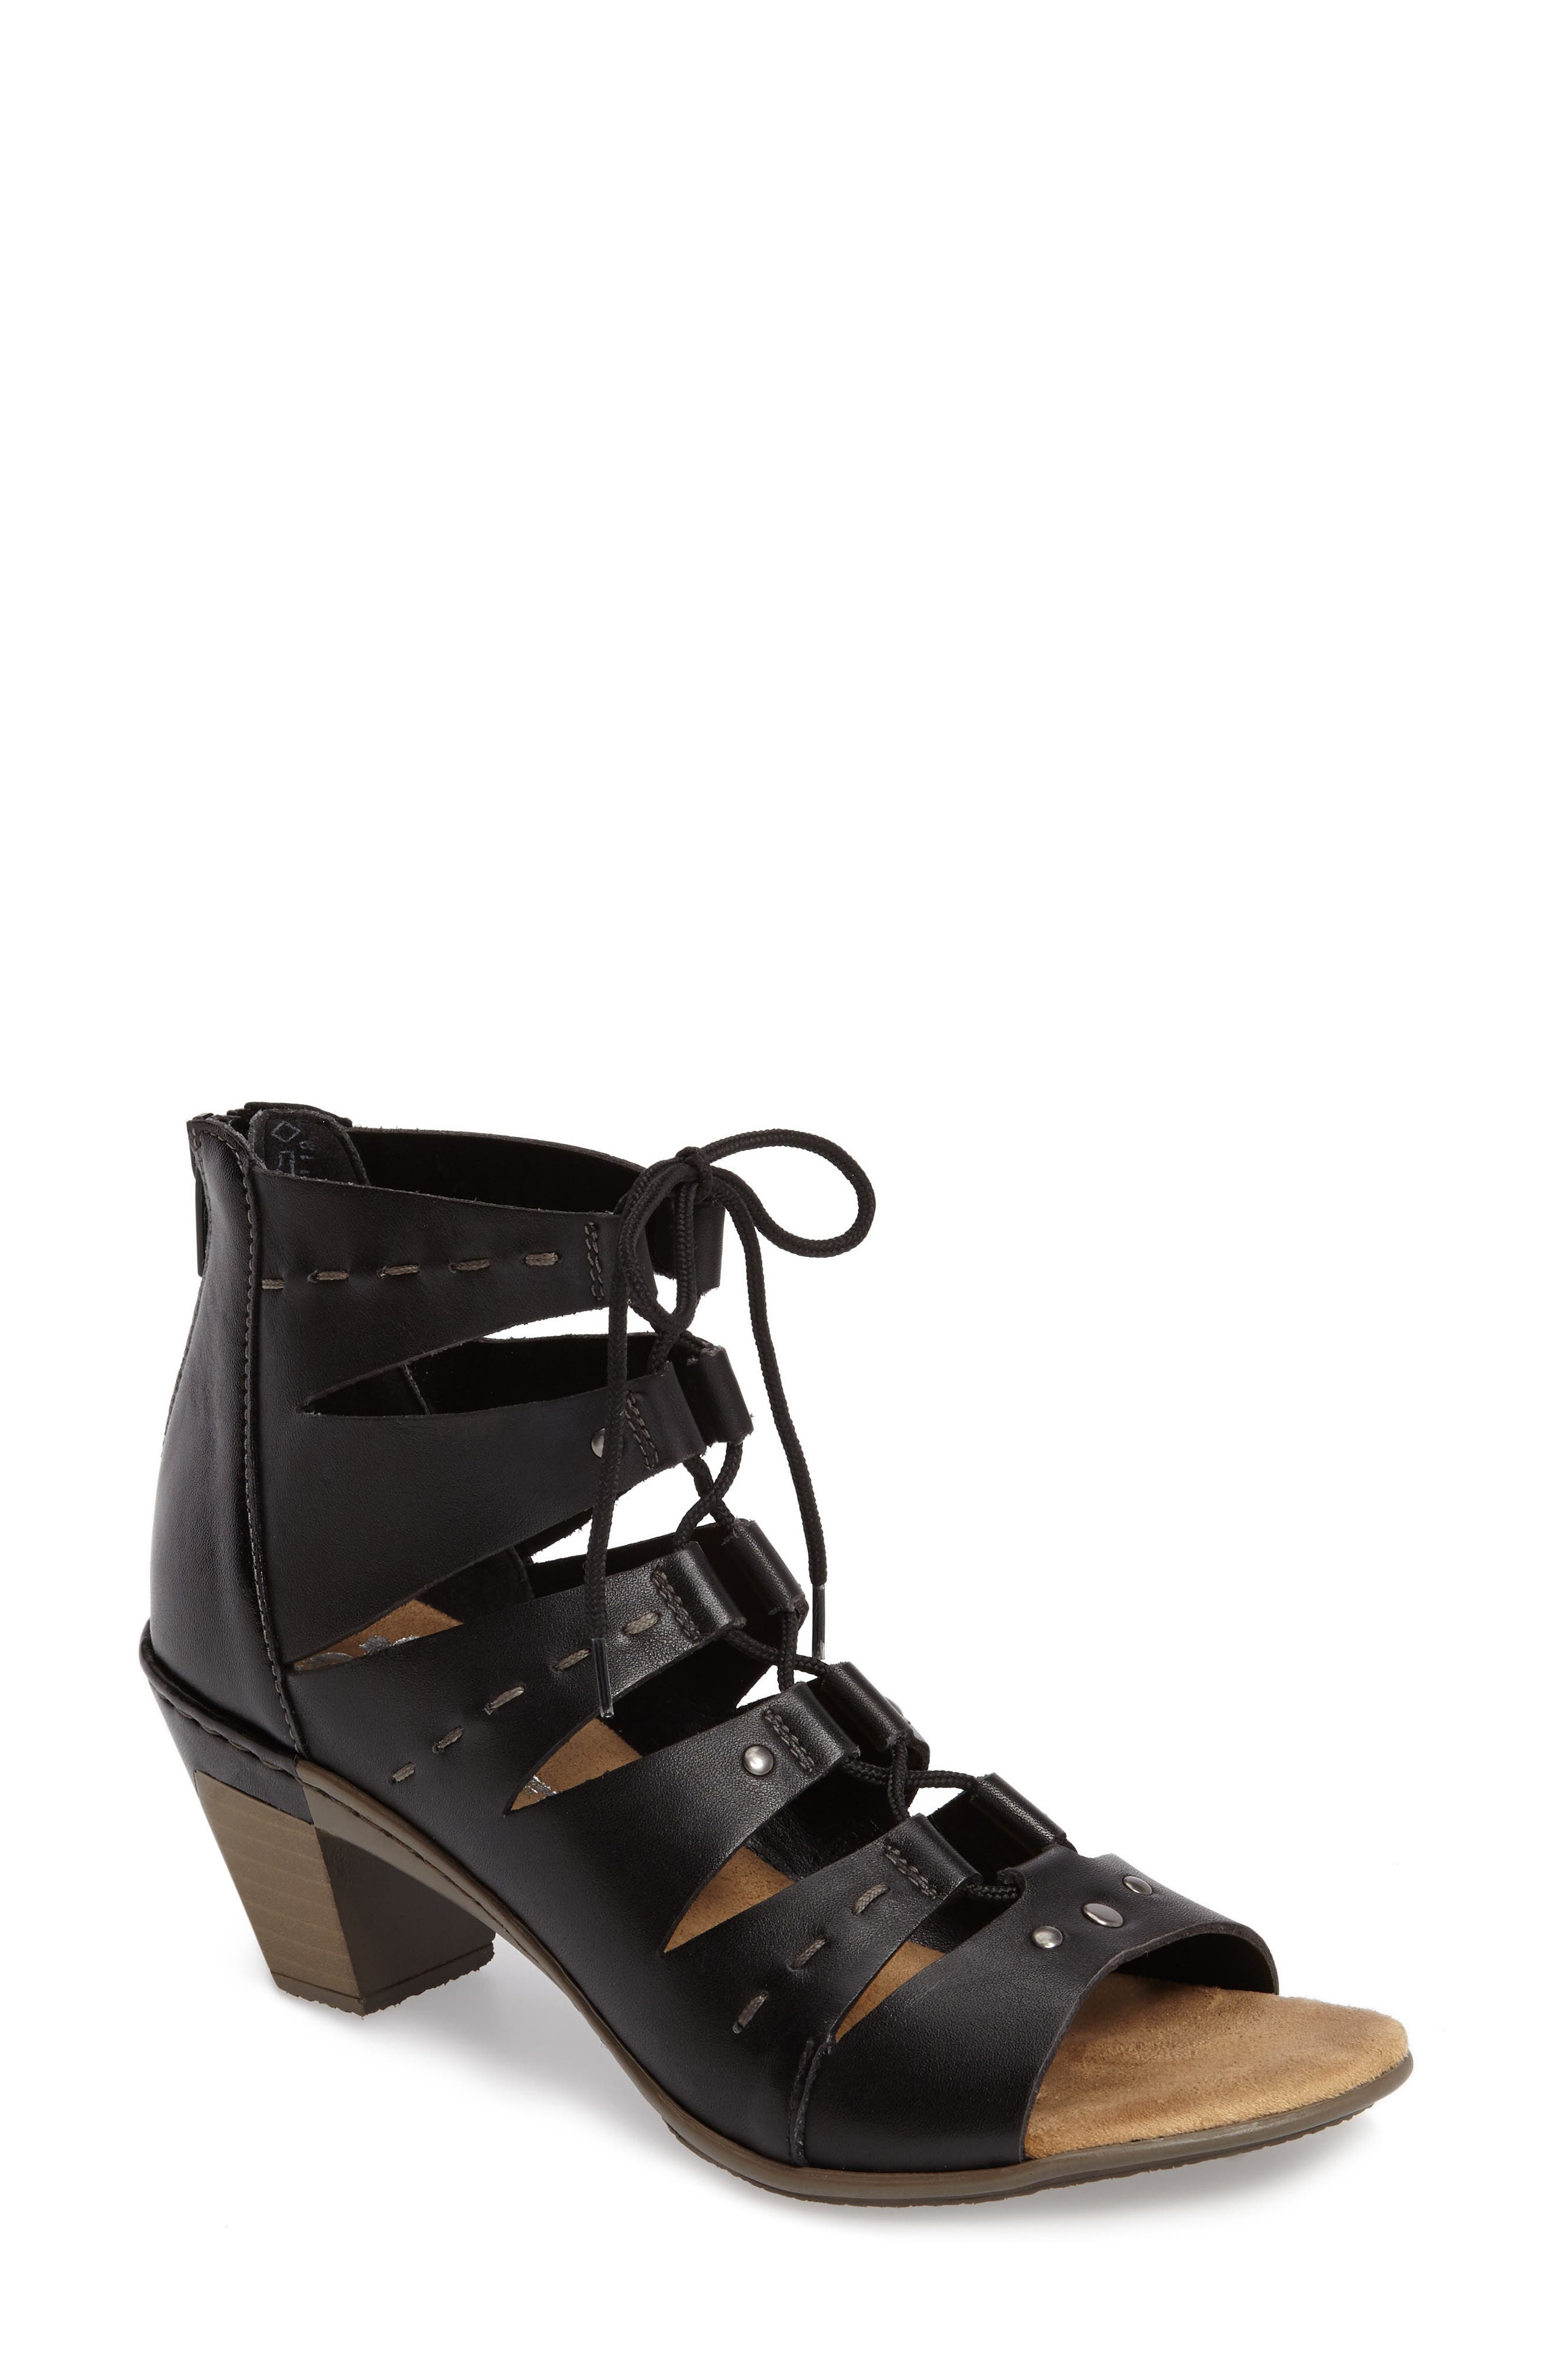 Aileen 99 Ghillie Cage Sandal,                             Main thumbnail 1, color,                             Black Leather